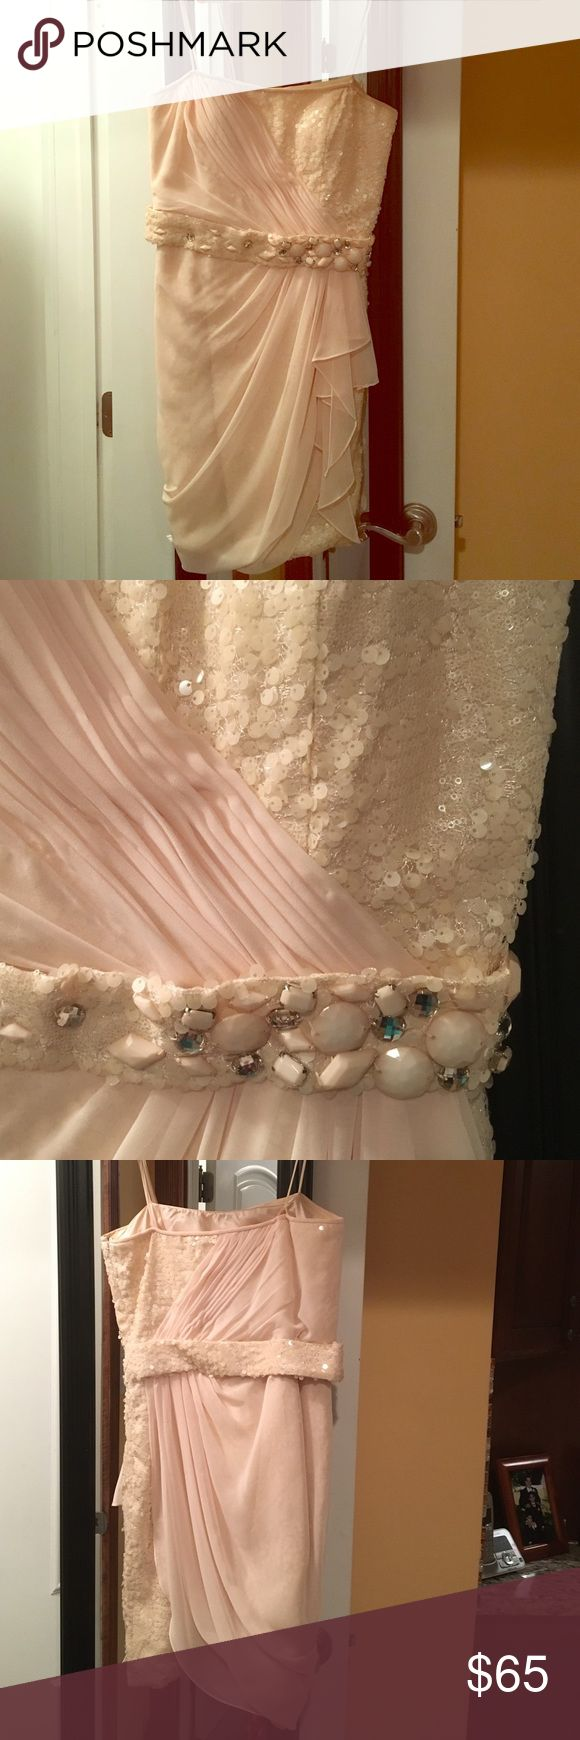 Stunning Pale Pink/Nude Beaded Dress Stunning Pale Pink/Nude Short Dress With Sequins On Bodice And Stones On Belt. Truly Unique! Only Worn Once. Size 12. I Have Since Lost Weight. LM Collection Dresses